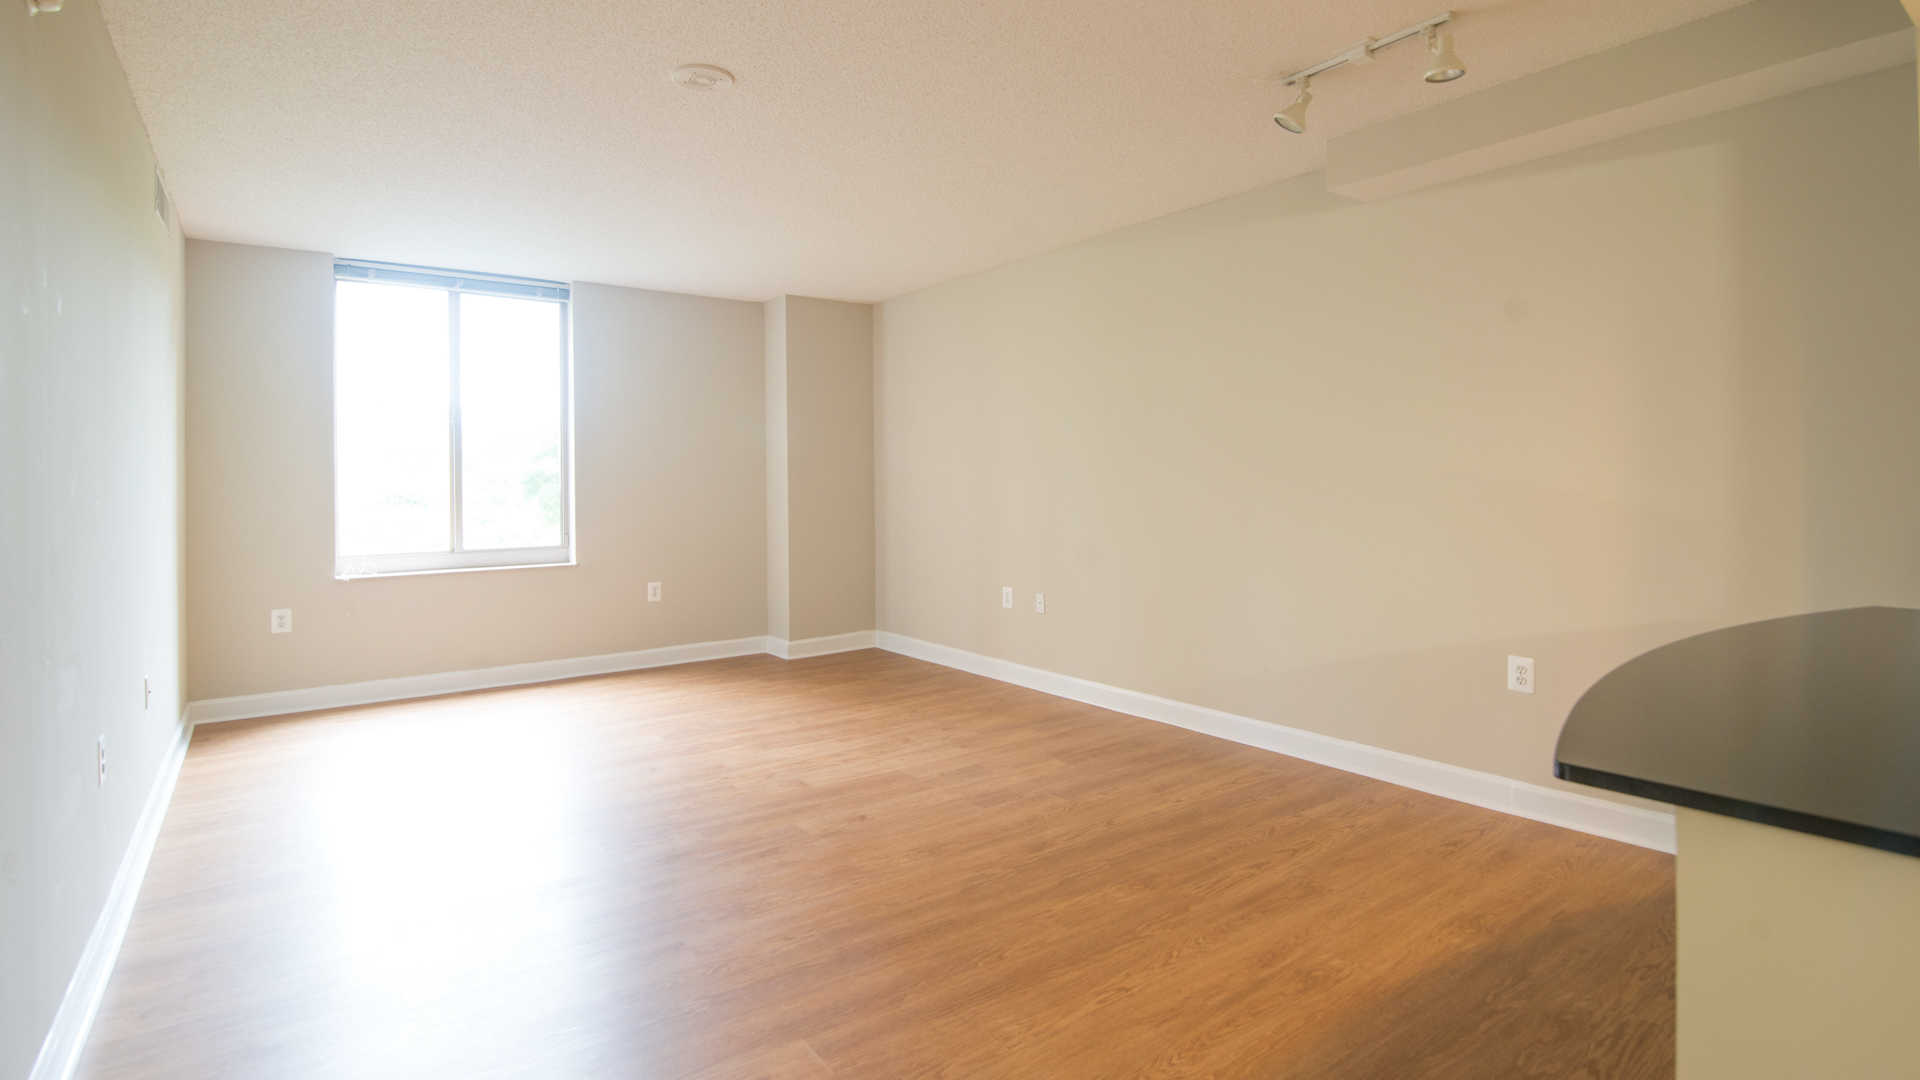 Living Room with Hard Surface Flooring